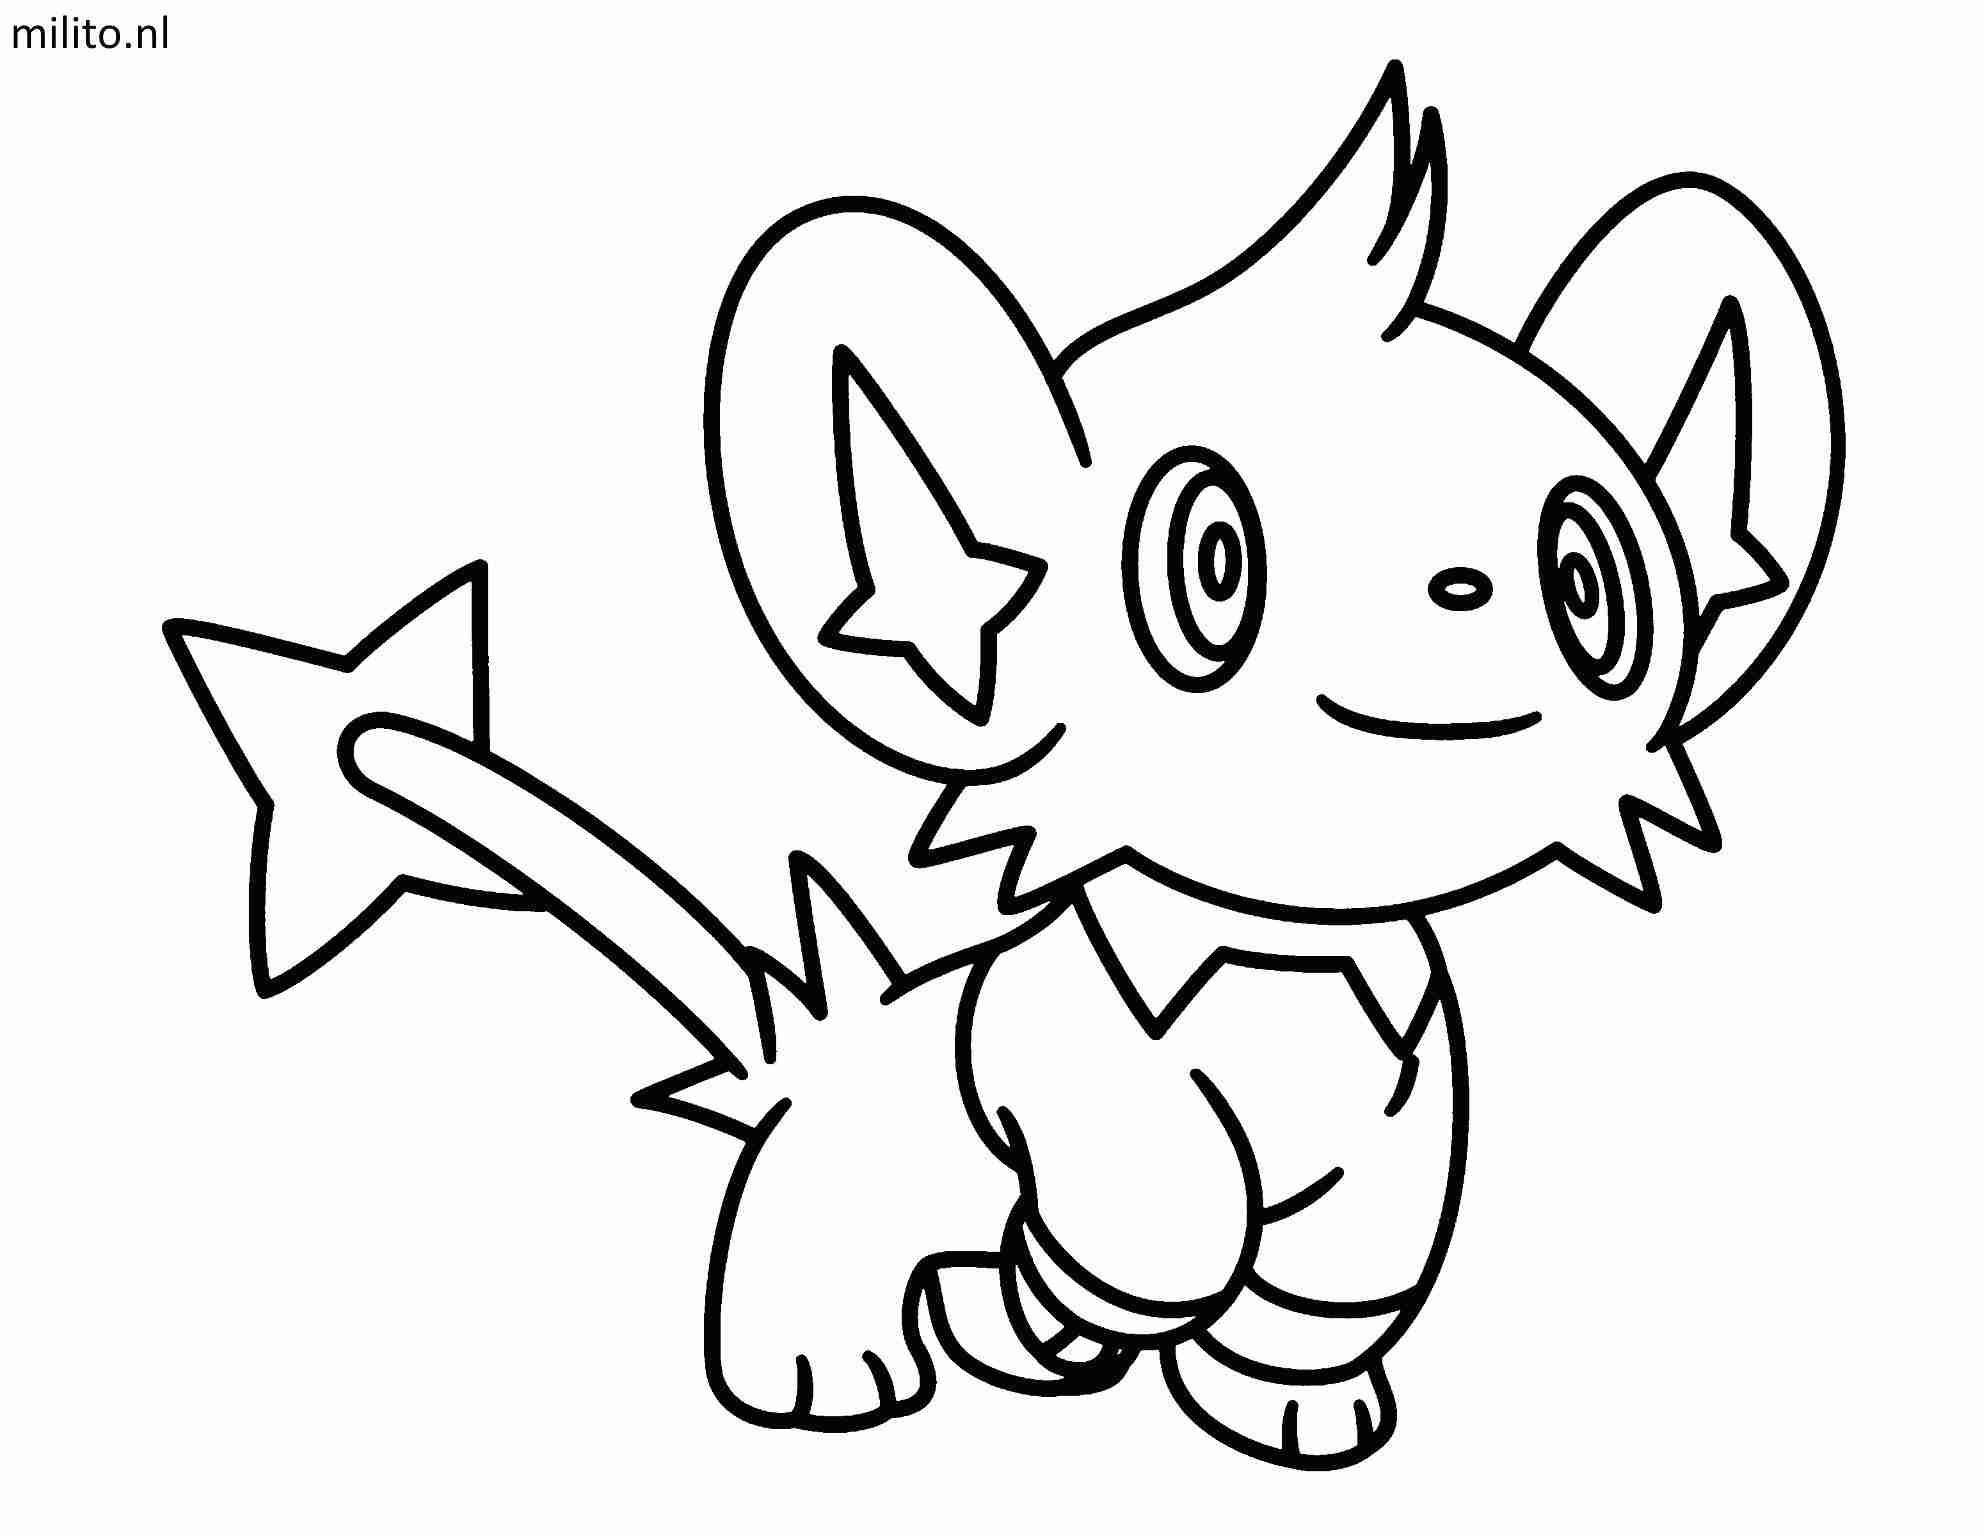 1984x1536 Pokemon Coloring Pages Printable Mudkip Google Search Colering